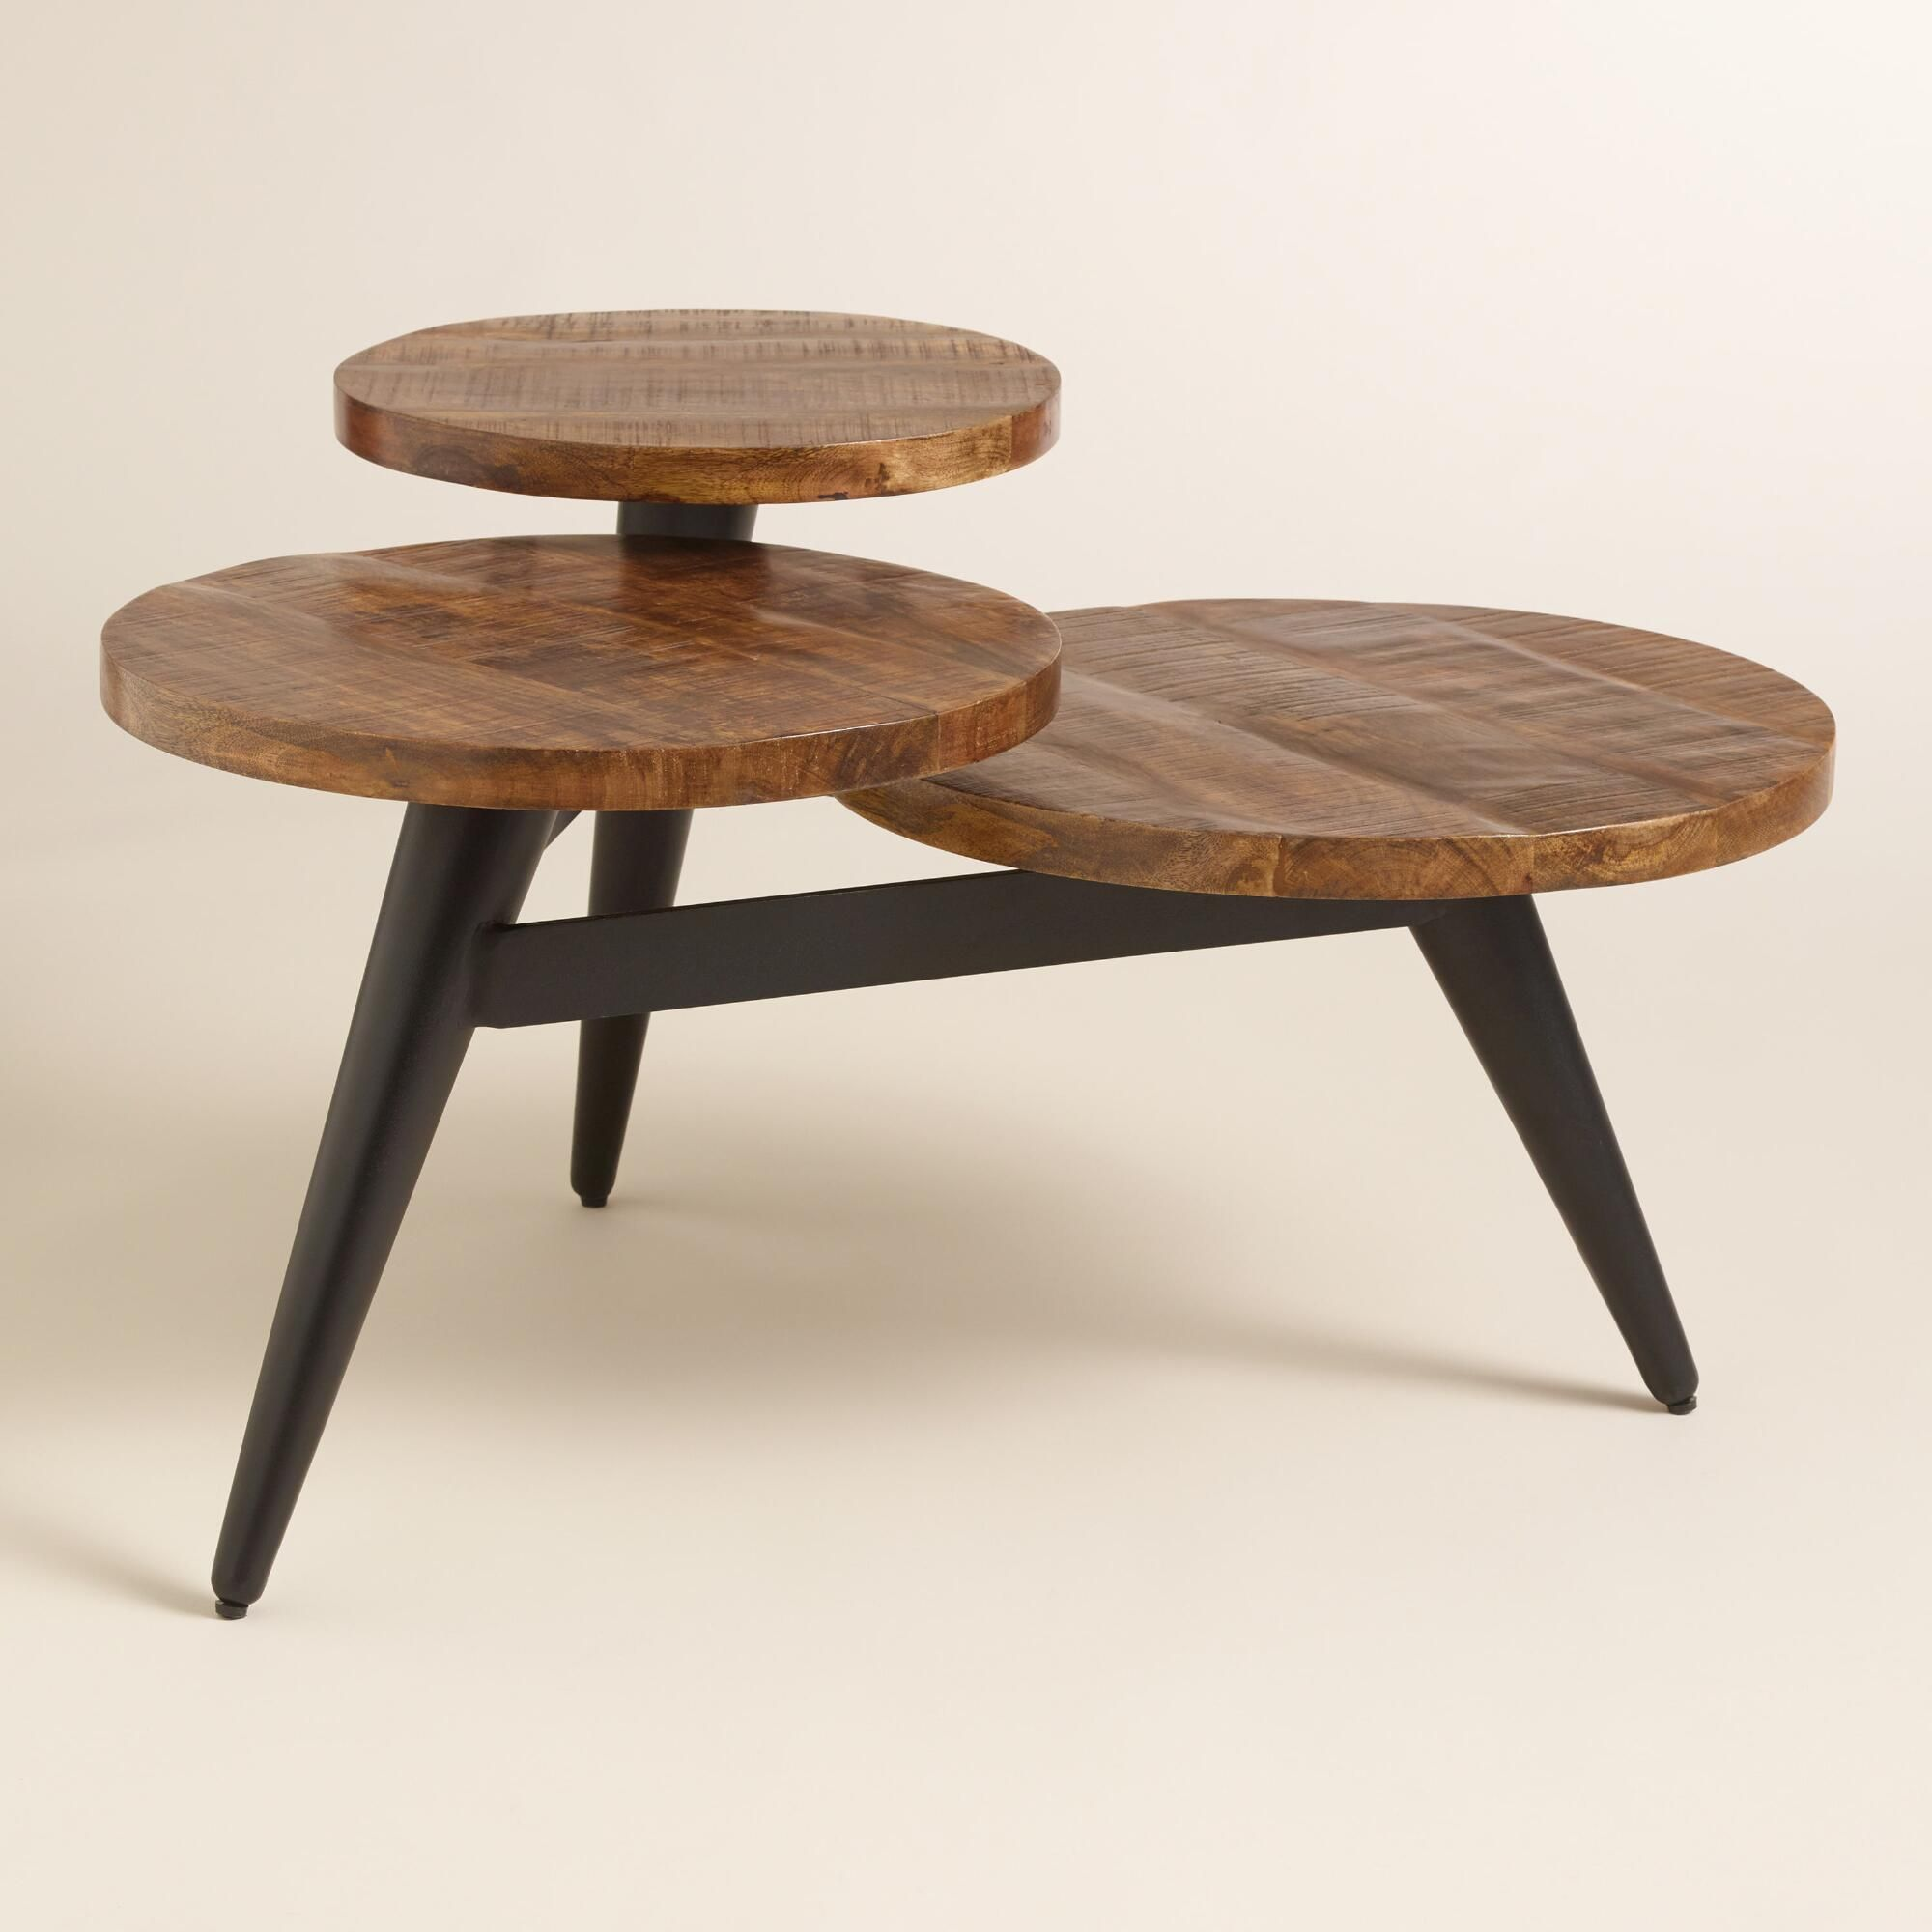 A standout statement piece our three tier coffee table features a